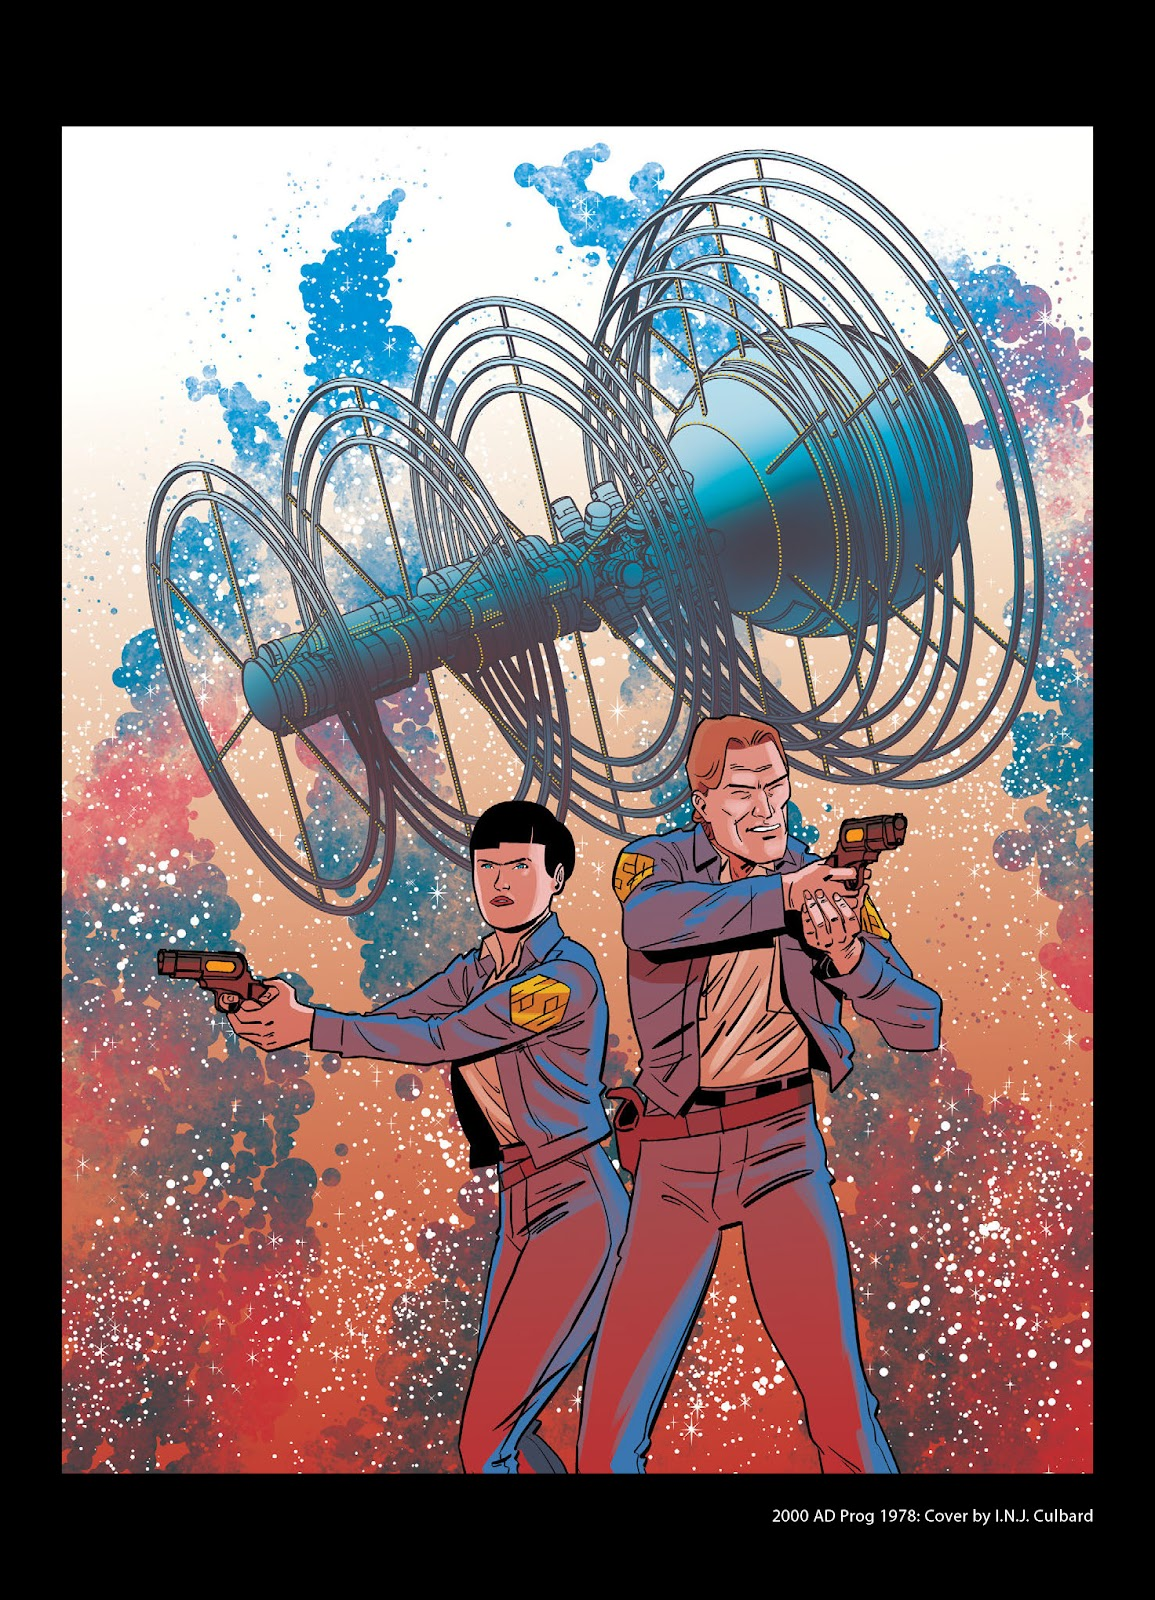 Read online Brink comic -  Issue # TPB 1 - 82